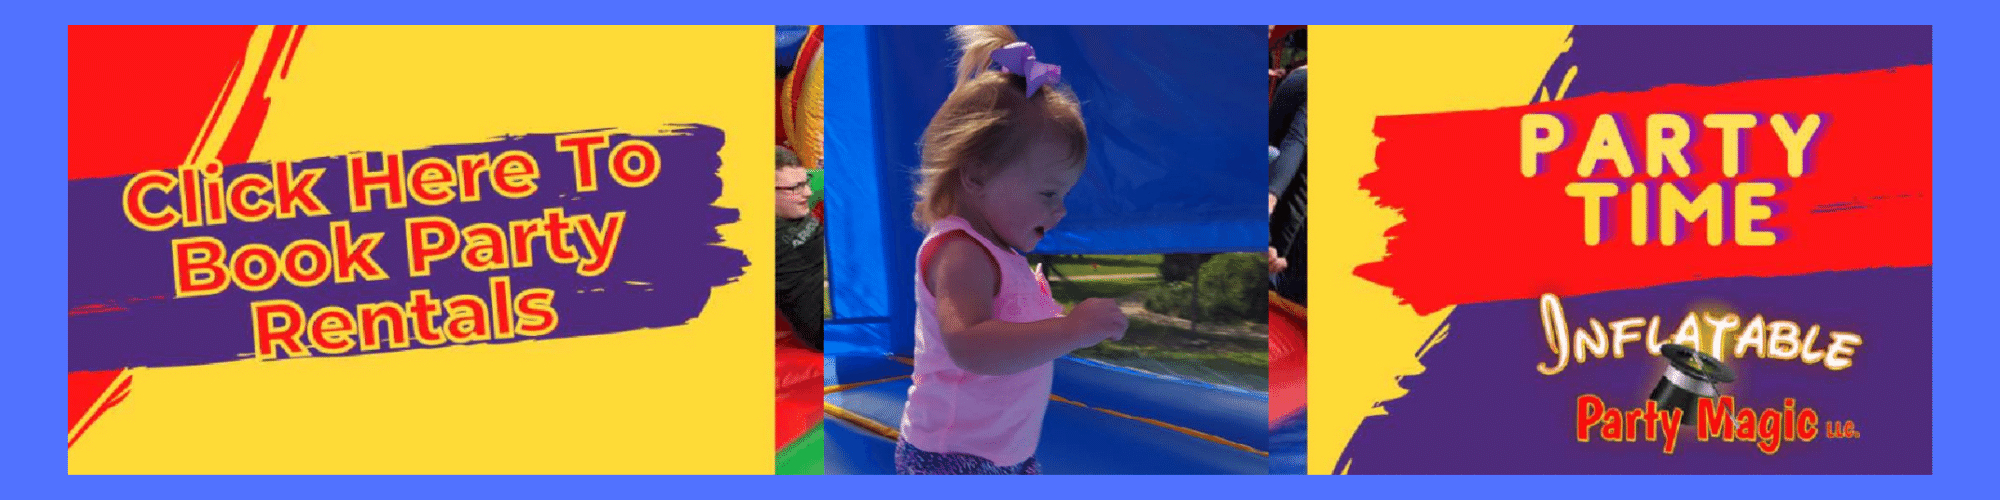 Rio Vista Bounce House Rentals, Water Slide Rentals, and Party Rentals Book Now